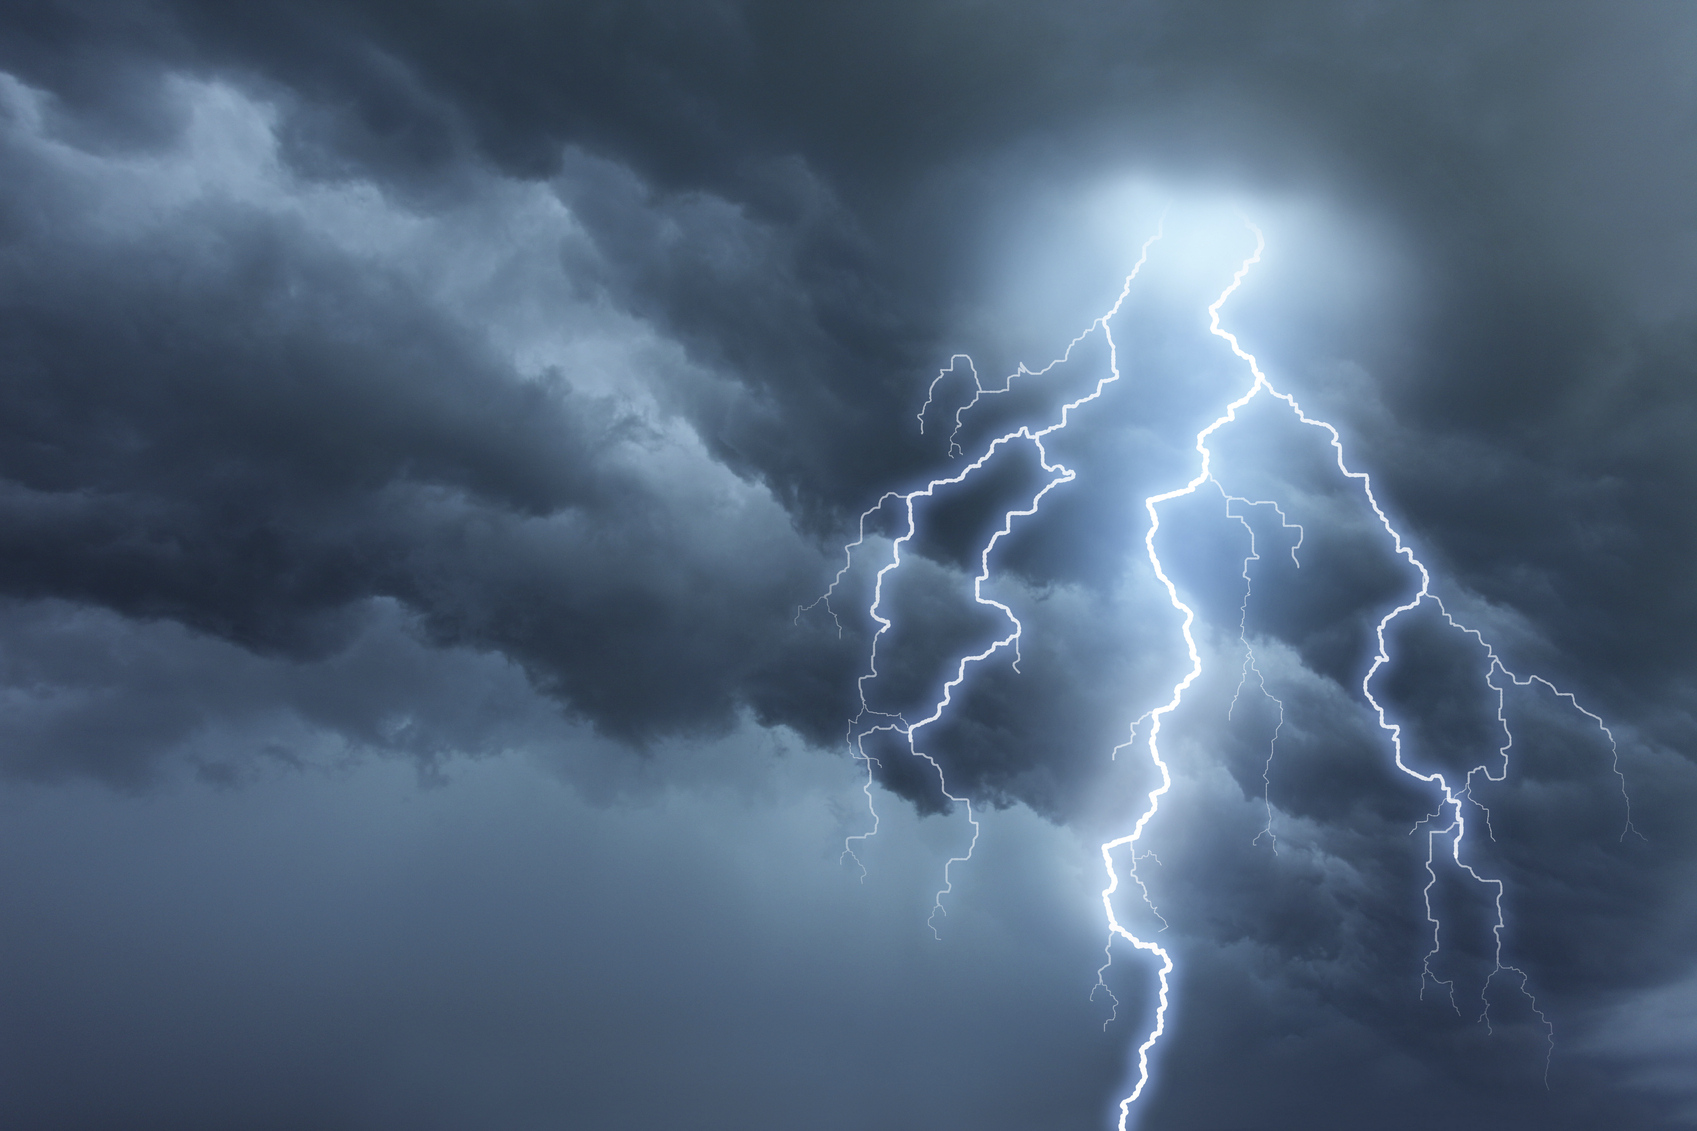 Cold front from the west will bring rain and thunderstorms to Denmark this week (photo: iStock)